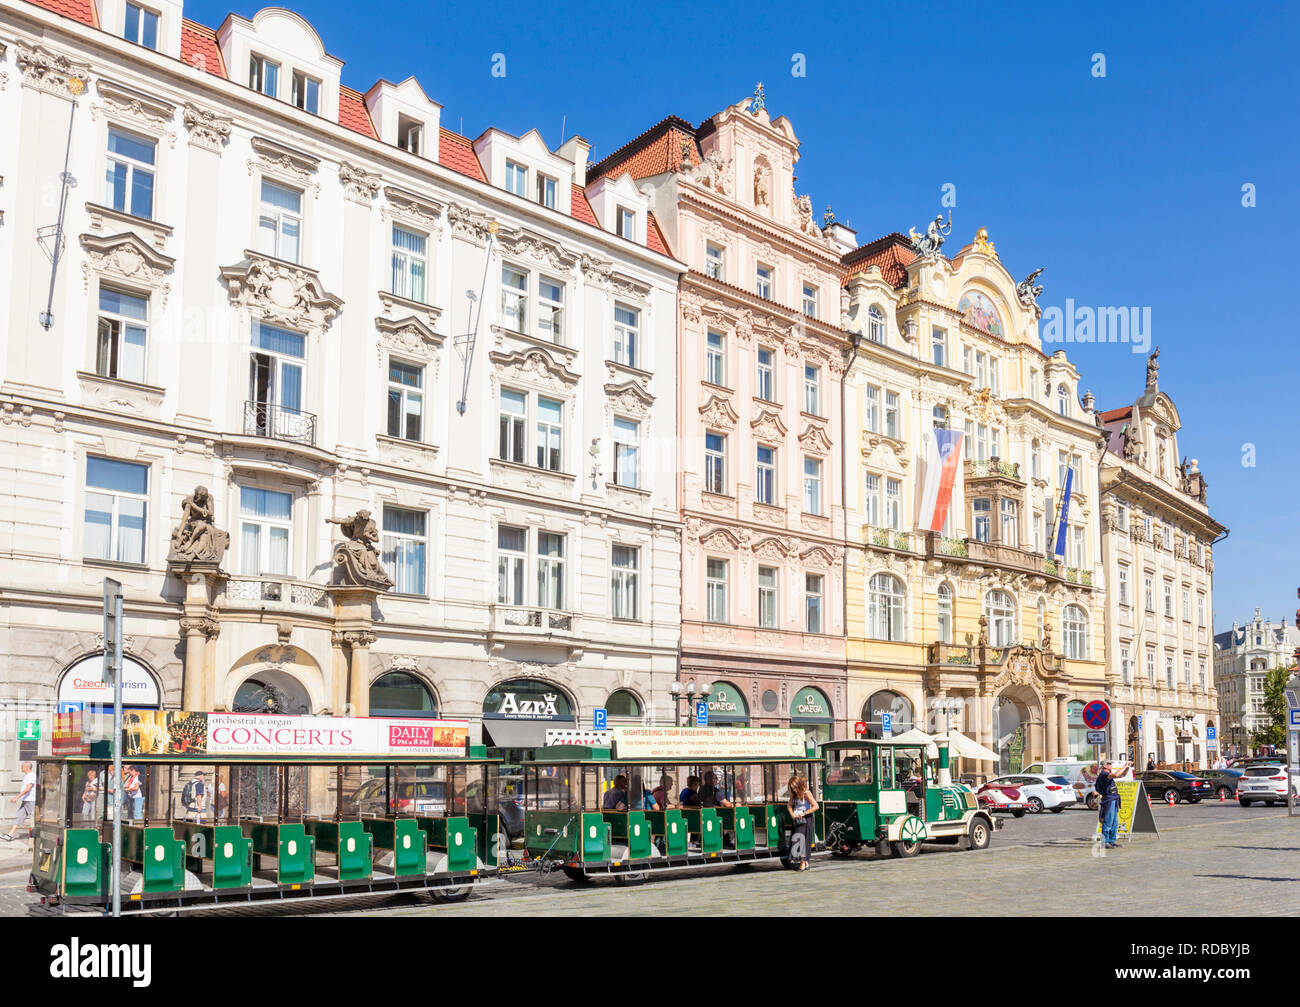 Prague novelty tourist train rides in the Old town square Staroměstské náměstí Prague Czech Republic Europe - Stock Image